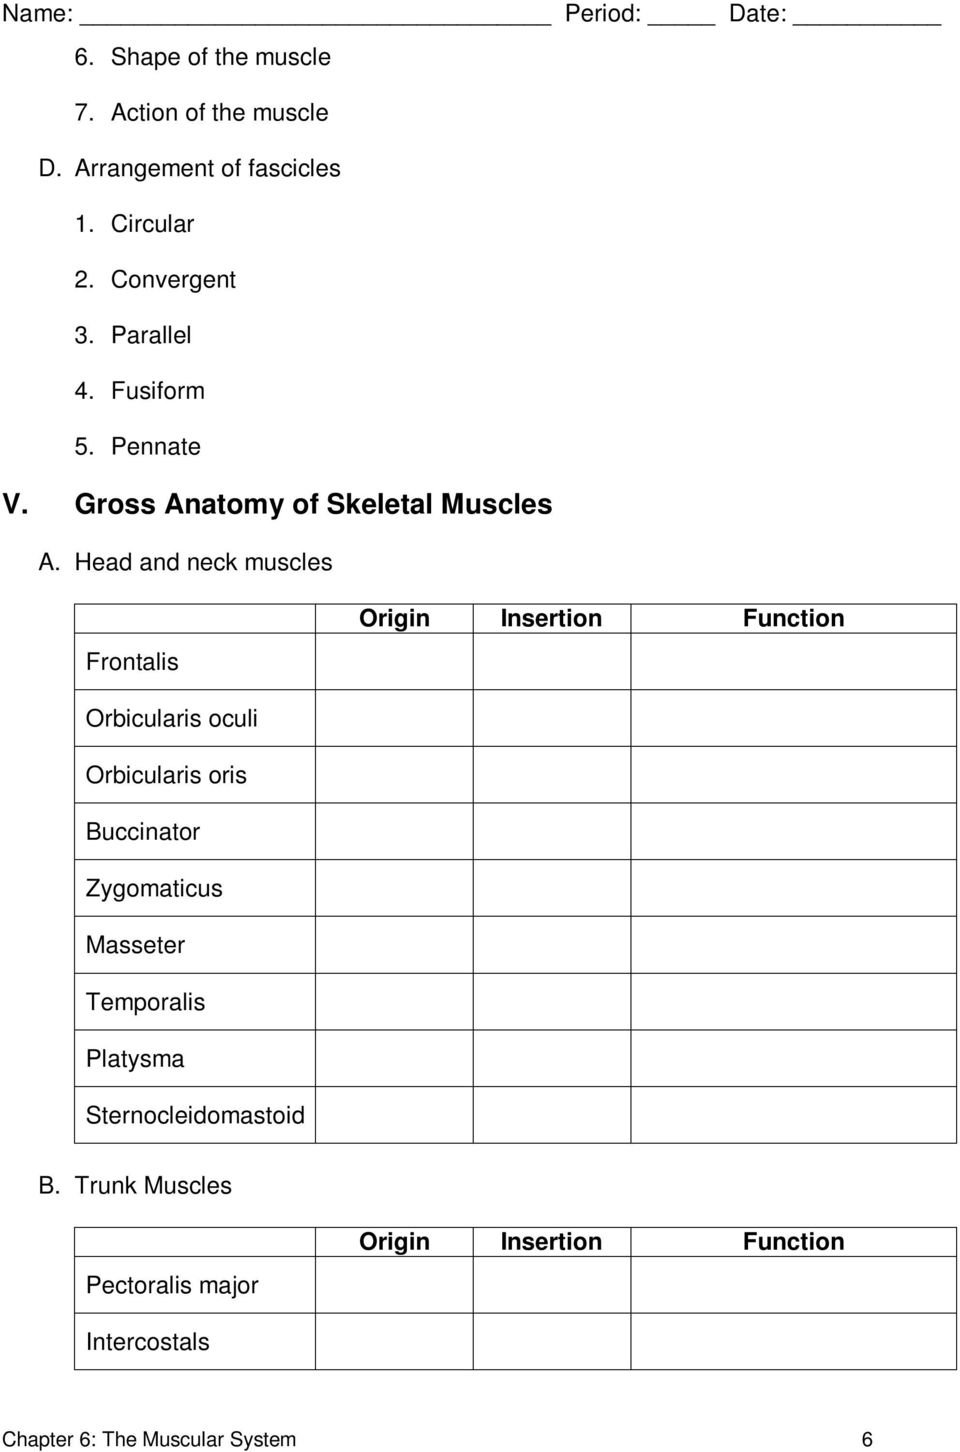 Workbooks » Anatomy And Physiology Coloring Workbook Answers Chapter ...